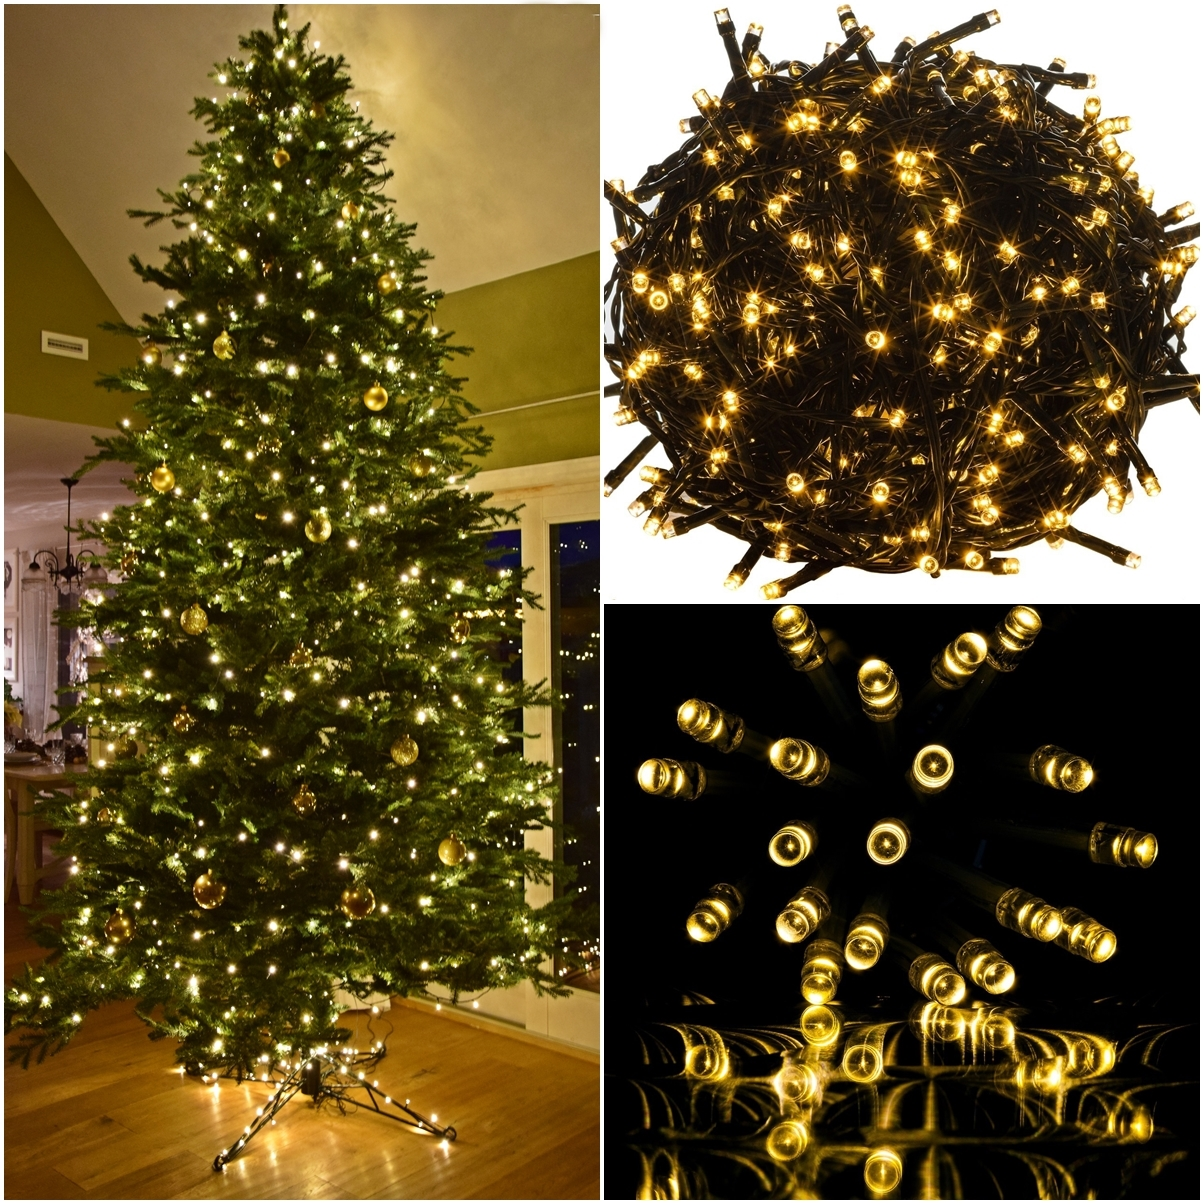 ber hmt weihnachtsbaum licht an der wand ideen weihnachtsbilder. Black Bedroom Furniture Sets. Home Design Ideas